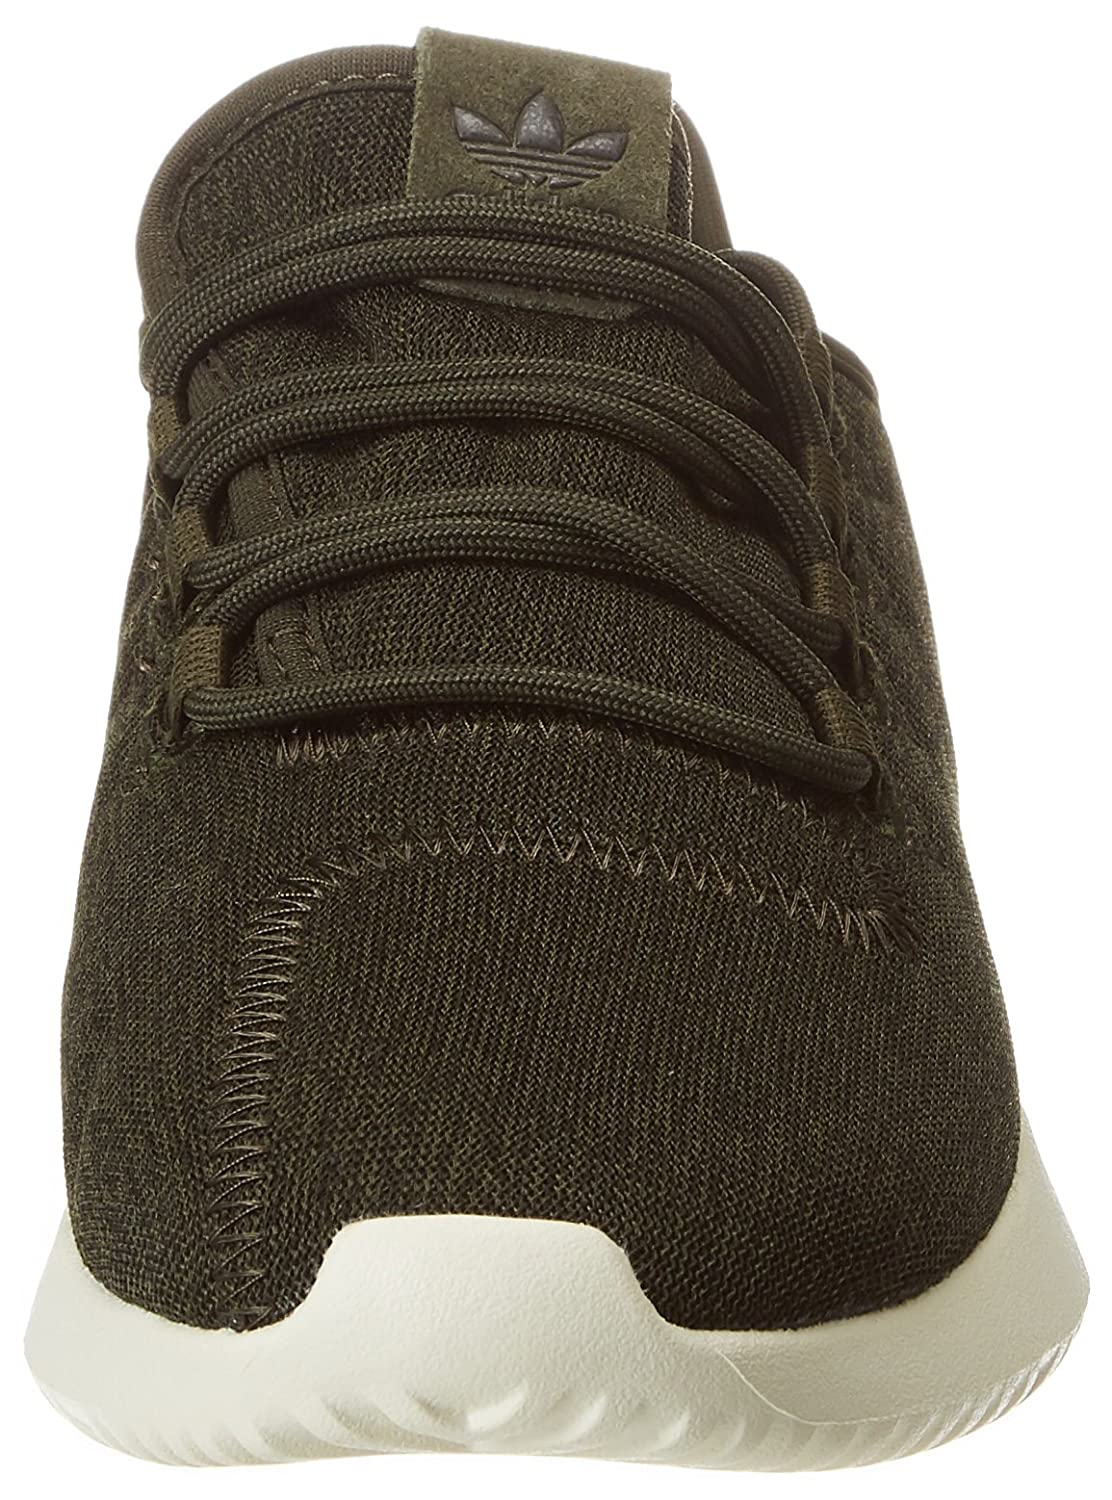 Adidas Zapatillas Tubular Zapatillas Shadow, Mujer Zapatillas Adidas B001AH0IS6 para 7abe12